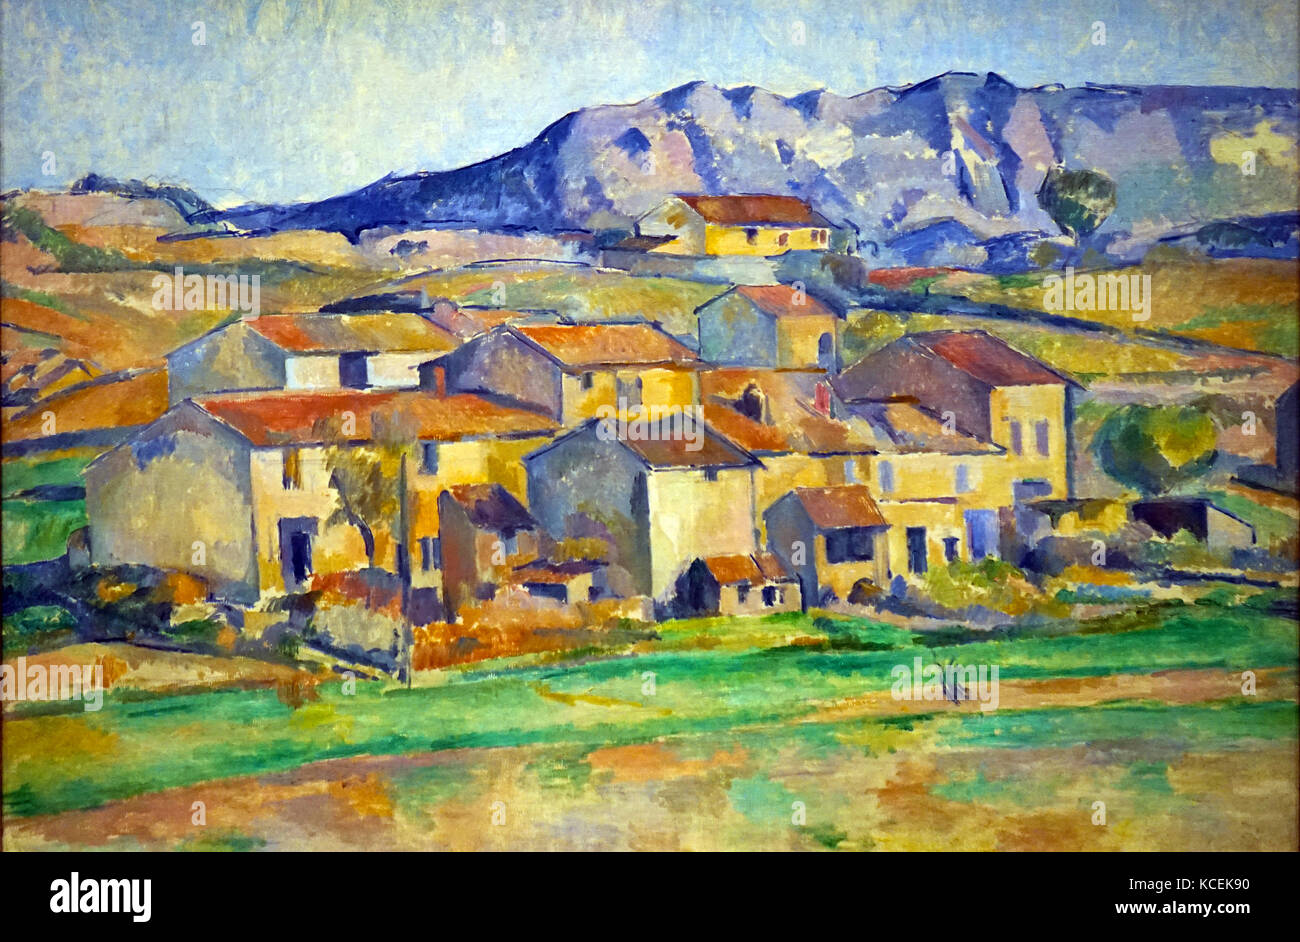 Painting titled 'Hamlet at Payannet, near Gardanne; by Paul Cézanne (1839-1906) a French Post-Impressionist - Stock Image